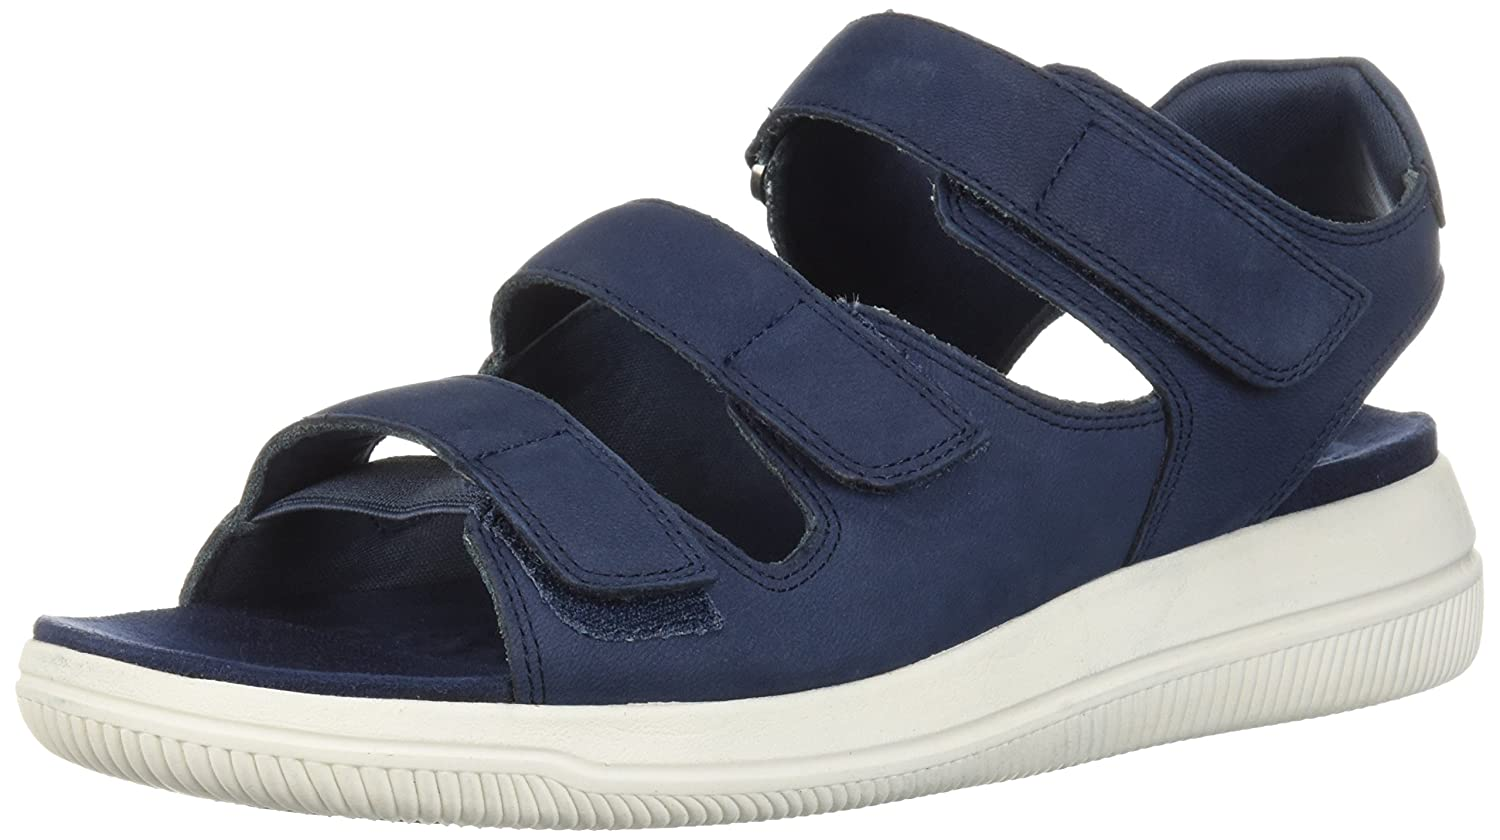 Easy Spirit Women's Shadow8 Slipper B077YFTCMK 8 B(M) US|Blue